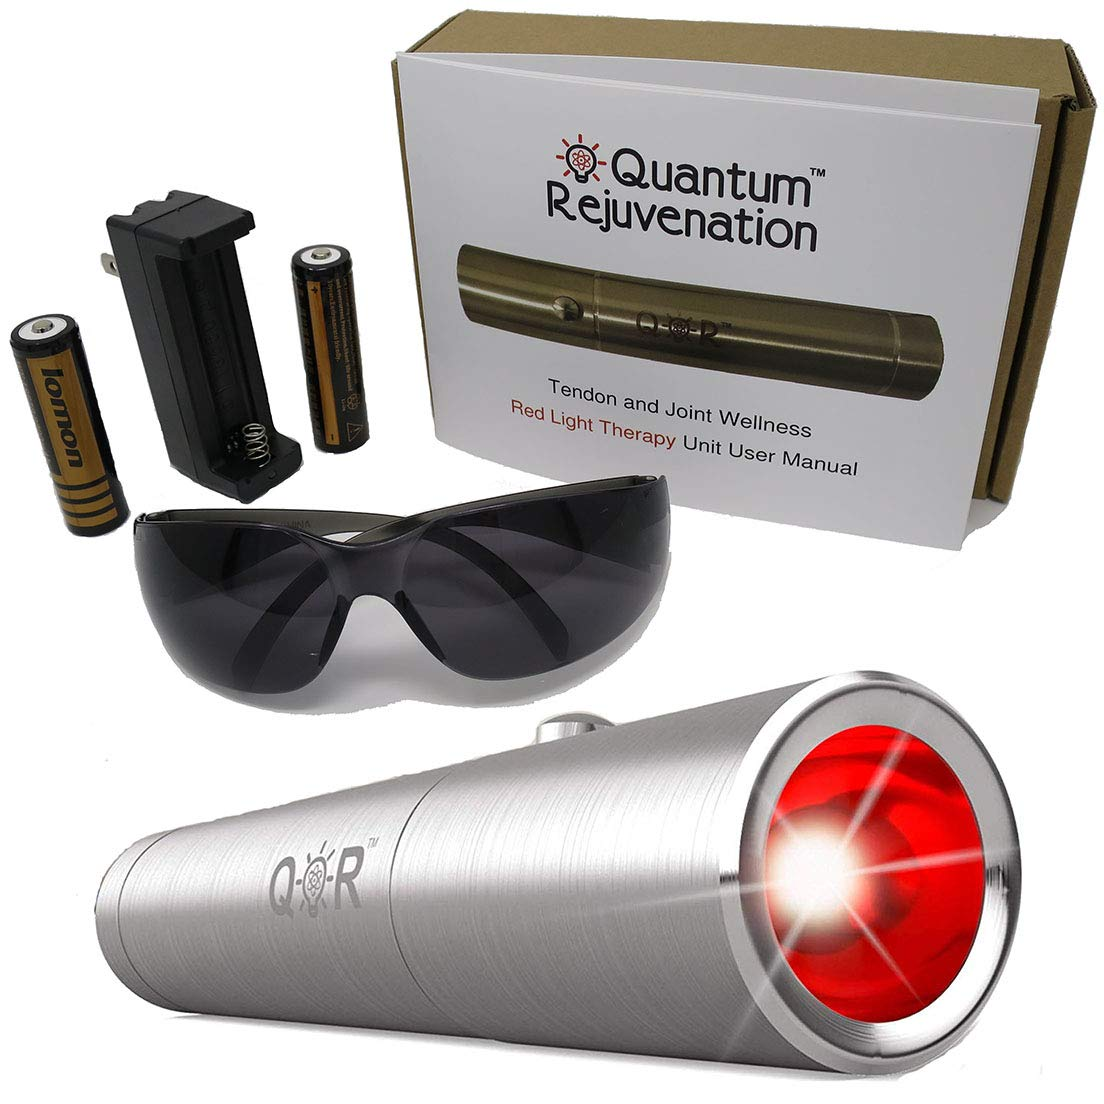 Quantum Rejuvenation® Introductory Sale - Red Light Therapy Device - FDA Registered Advanced Pain Relief - Joint & Muscle Reliever - Medical Grade by Quantum Rejuvenation